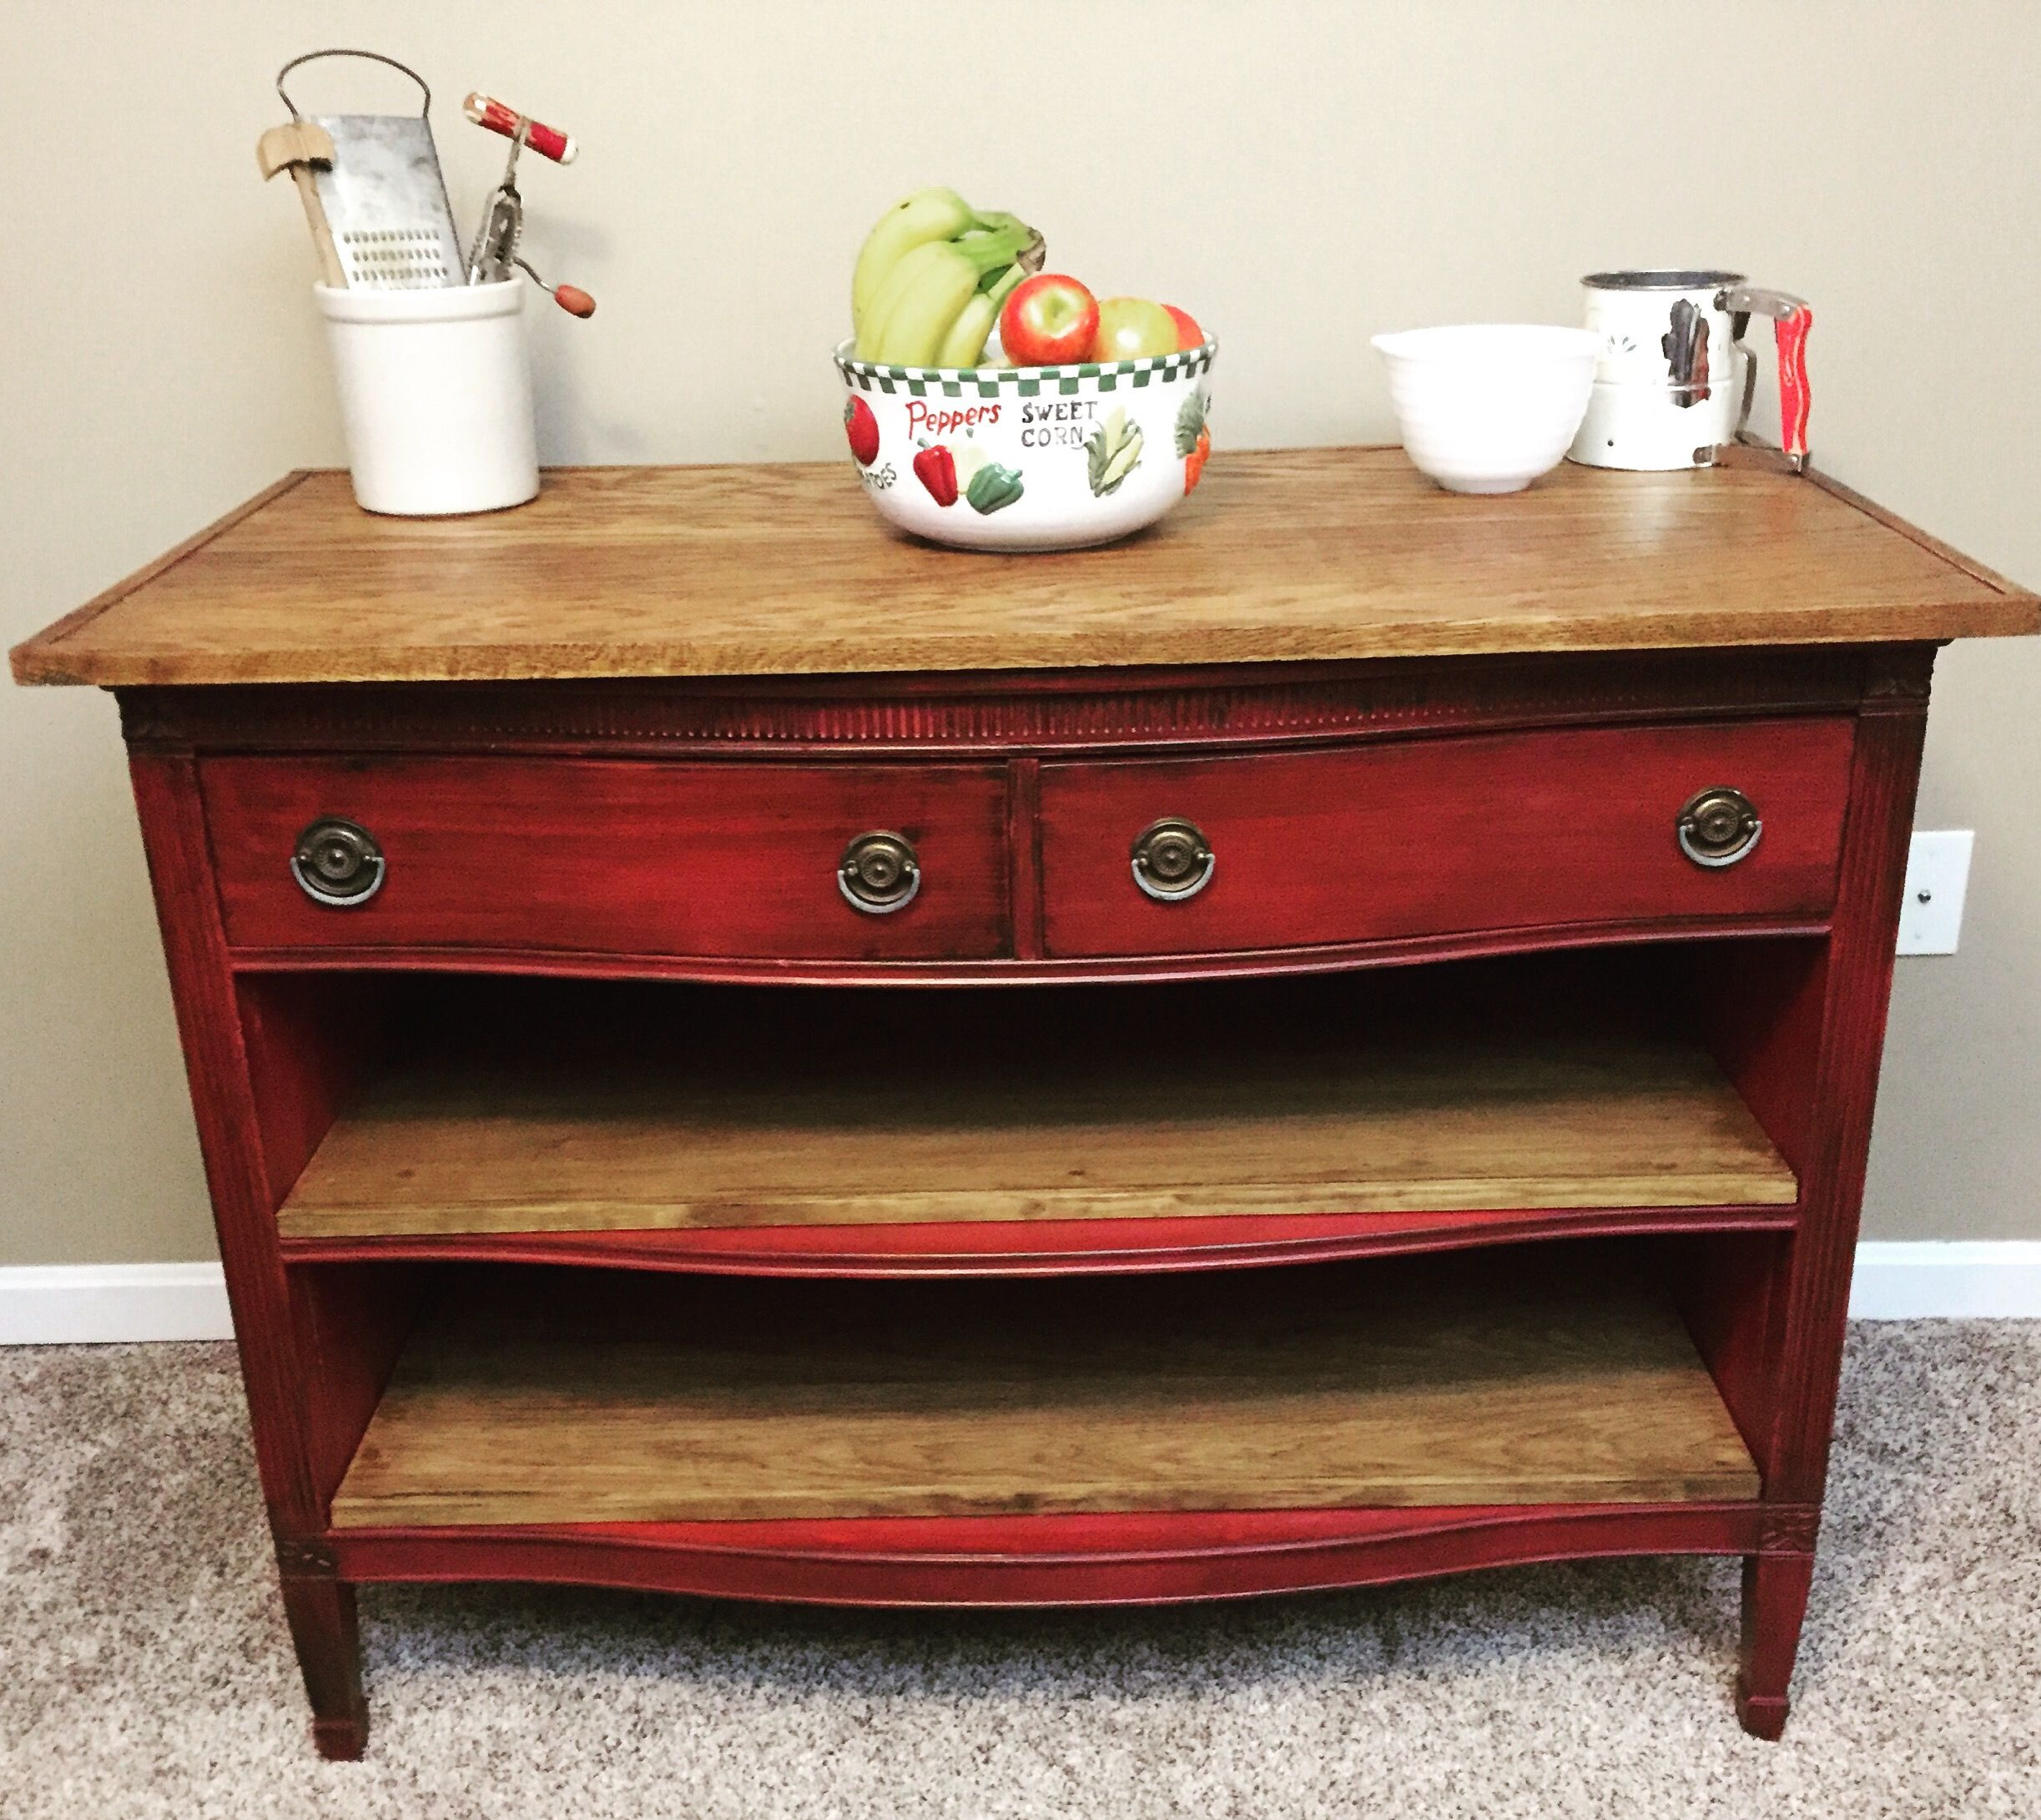 Kitchen Islands Made From Old Furniture: From Antique Dresser To Rustic Kitchen Island. This 100